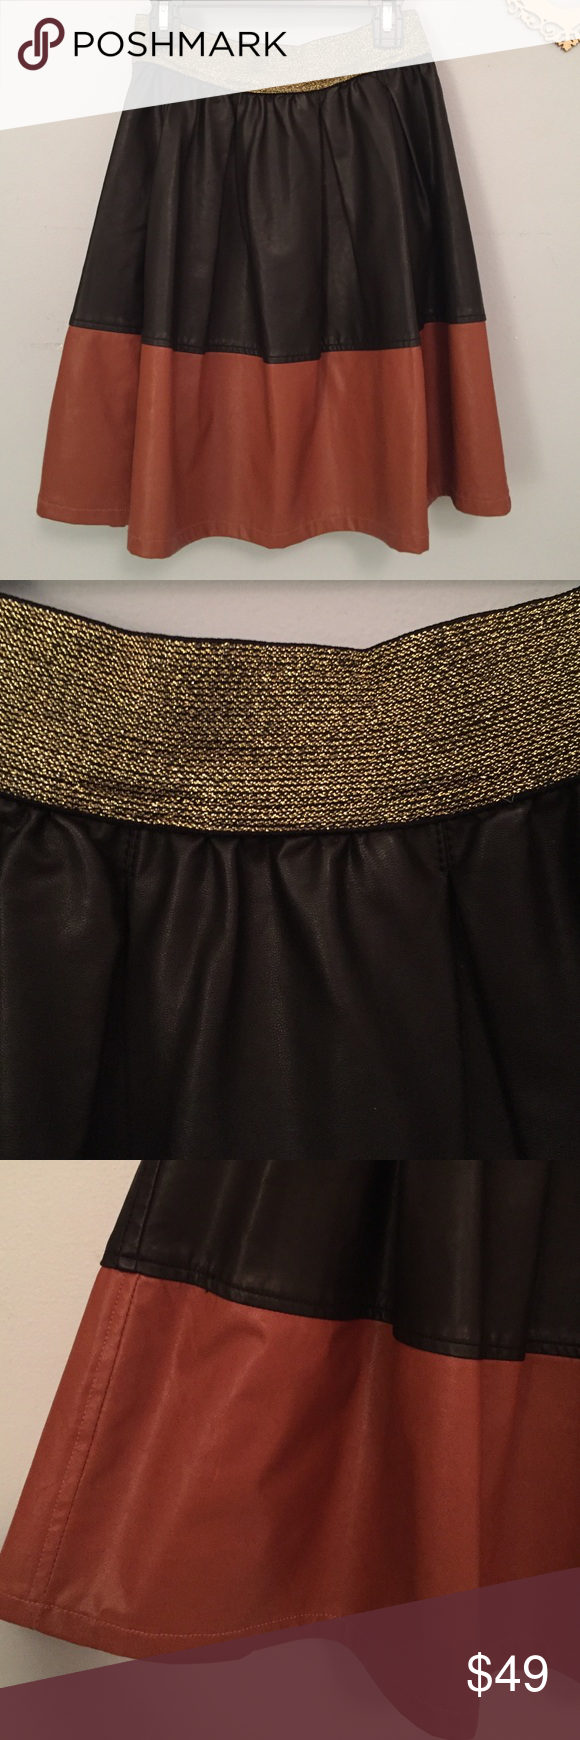 Anthropologie Faux-Leather Color Block Skirt By Champagne & Strawberry, purchased at Anthro for a pretty penny, this soft leather A-line skirt has a stretchy waste line glittered with gold, and a zipper back. Size 4P but fits like a normal S. Anthropologie Skirts A-Line or Full